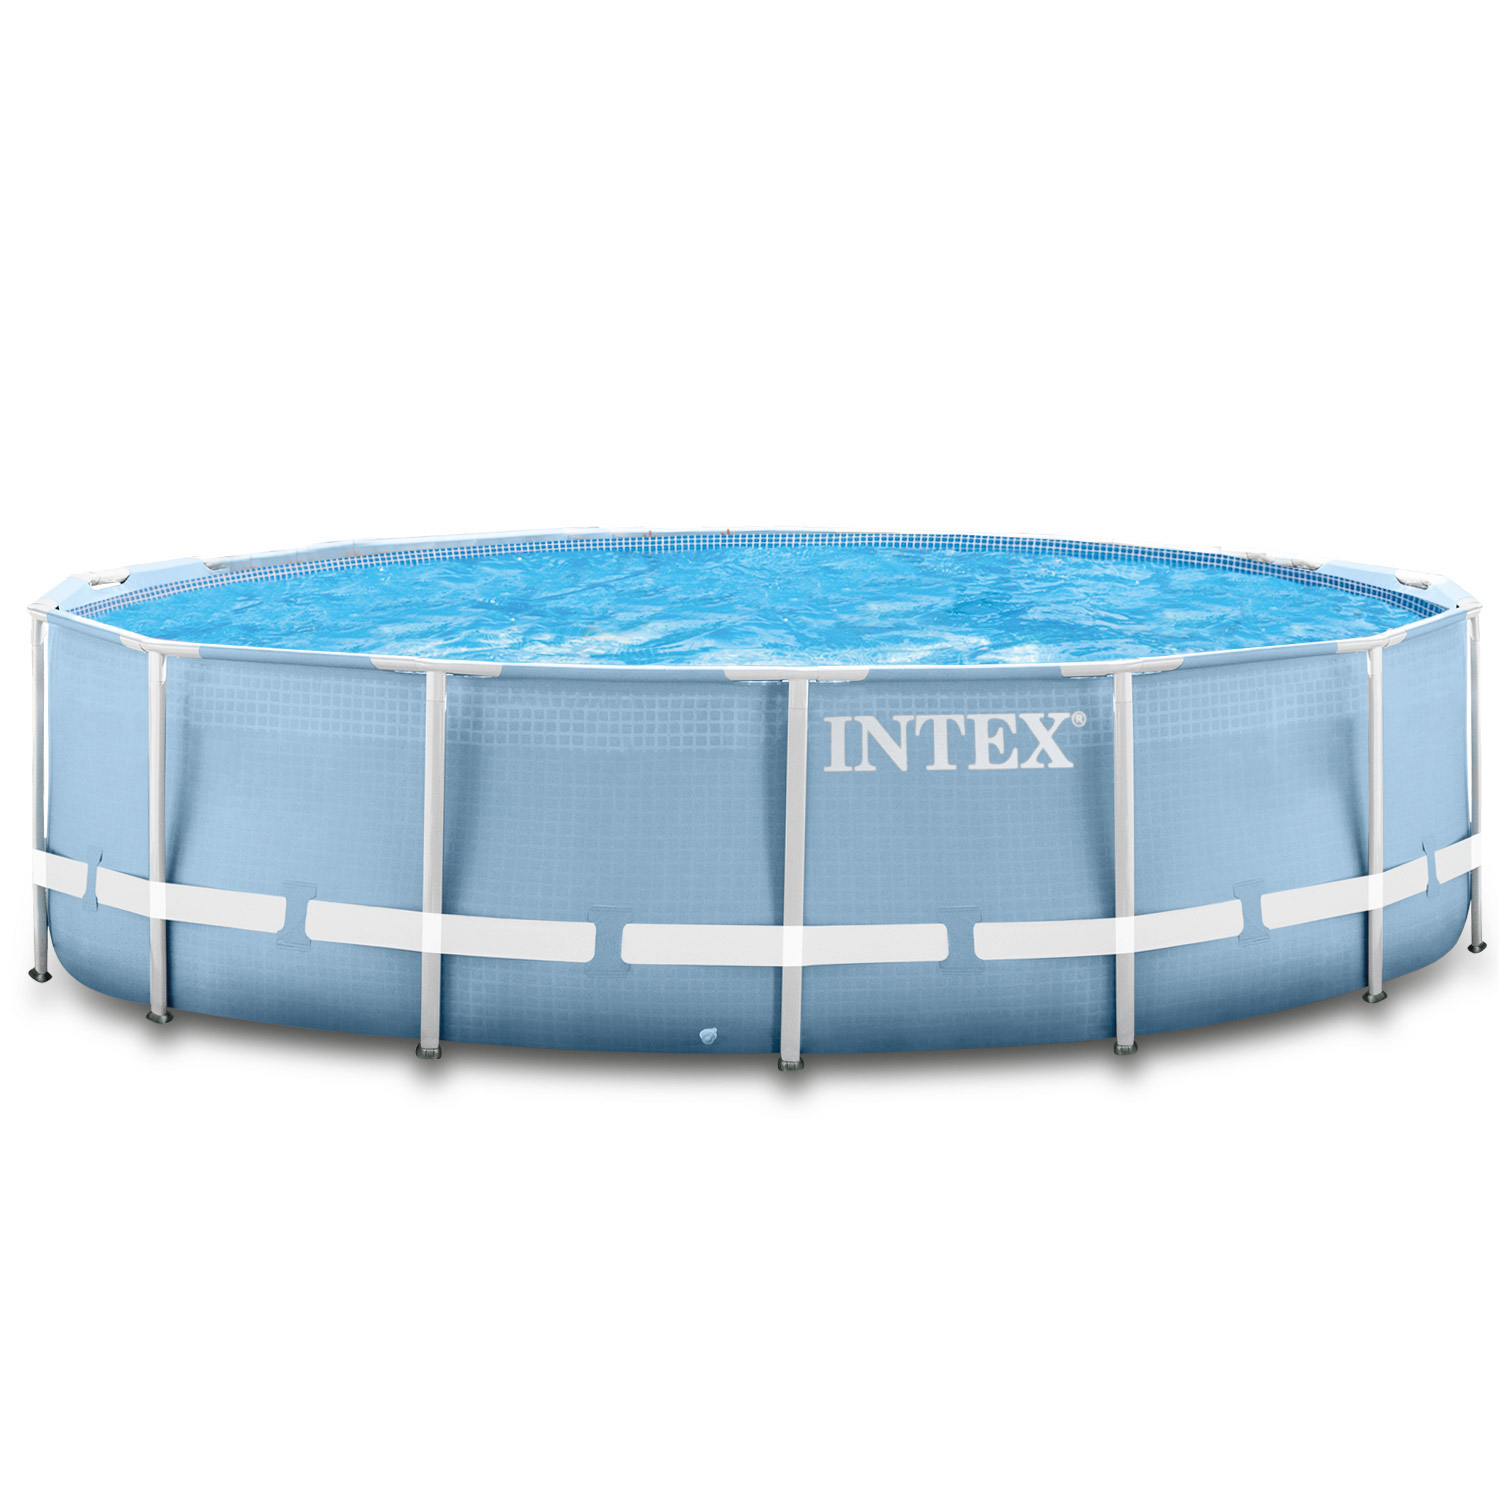 intex swimming pool frame 457x122cm mit pumpe leiter. Black Bedroom Furniture Sets. Home Design Ideas